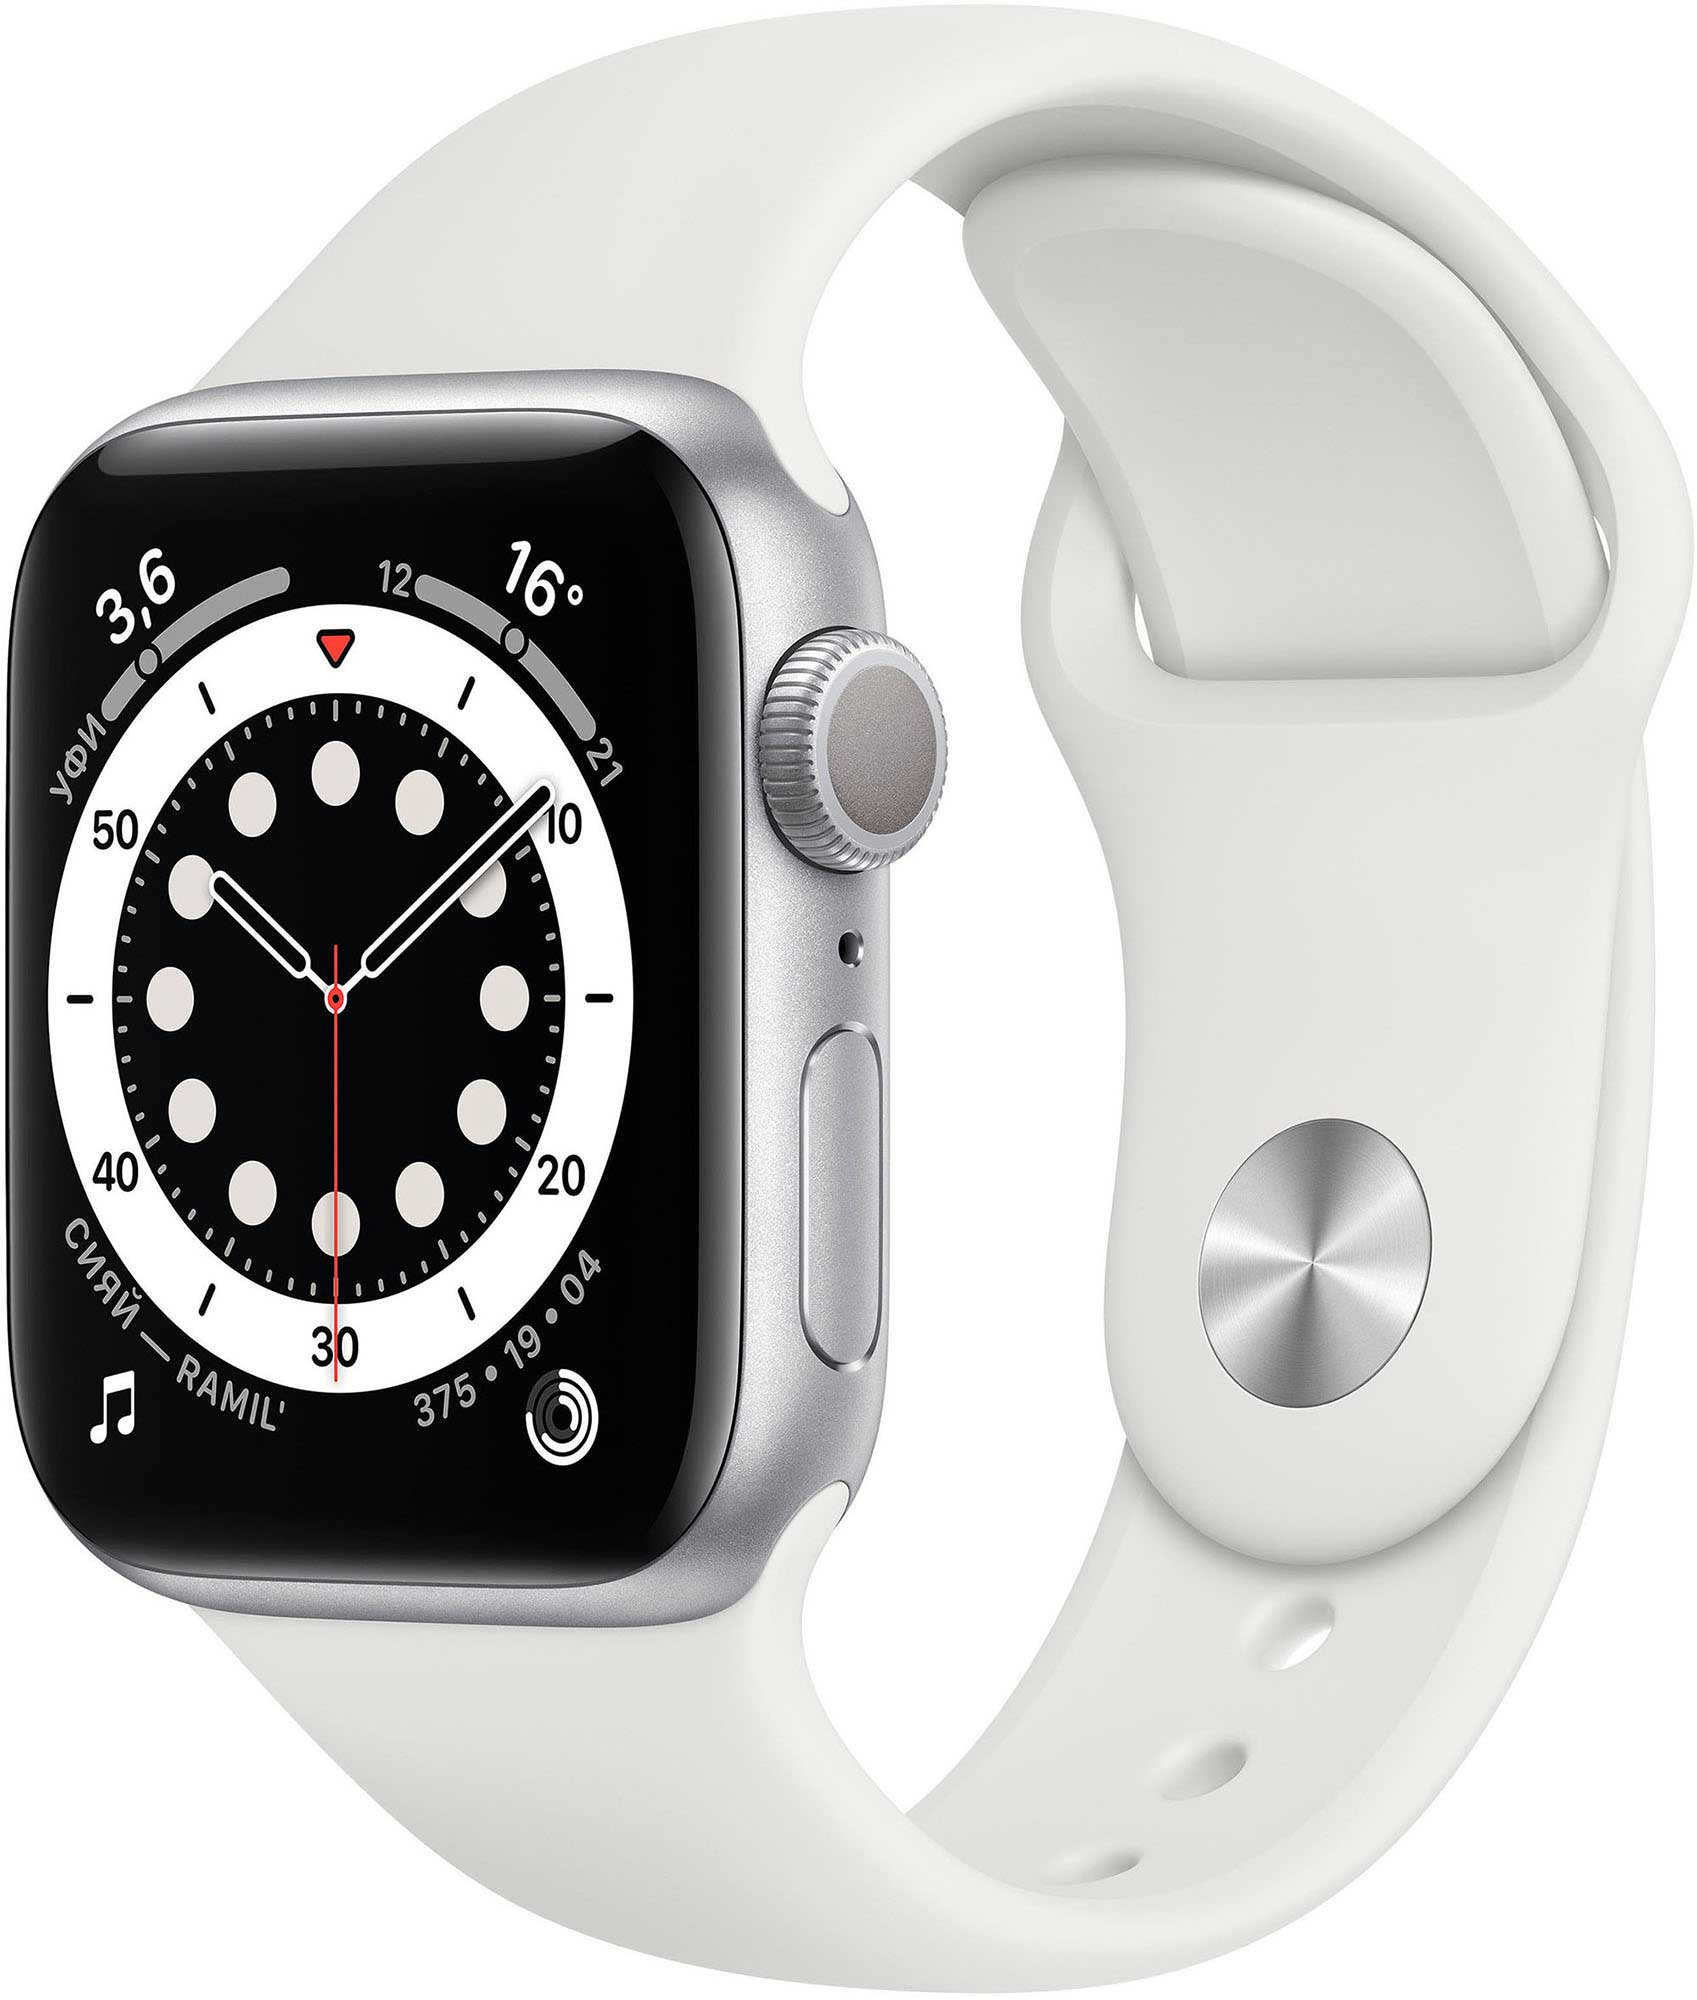 Умные часы Apple Watch Series 6 40mm Silver Aluminium Case with White (MG283RU/A) смарт часы apple watch series 6 40 мм silver mg283ru a